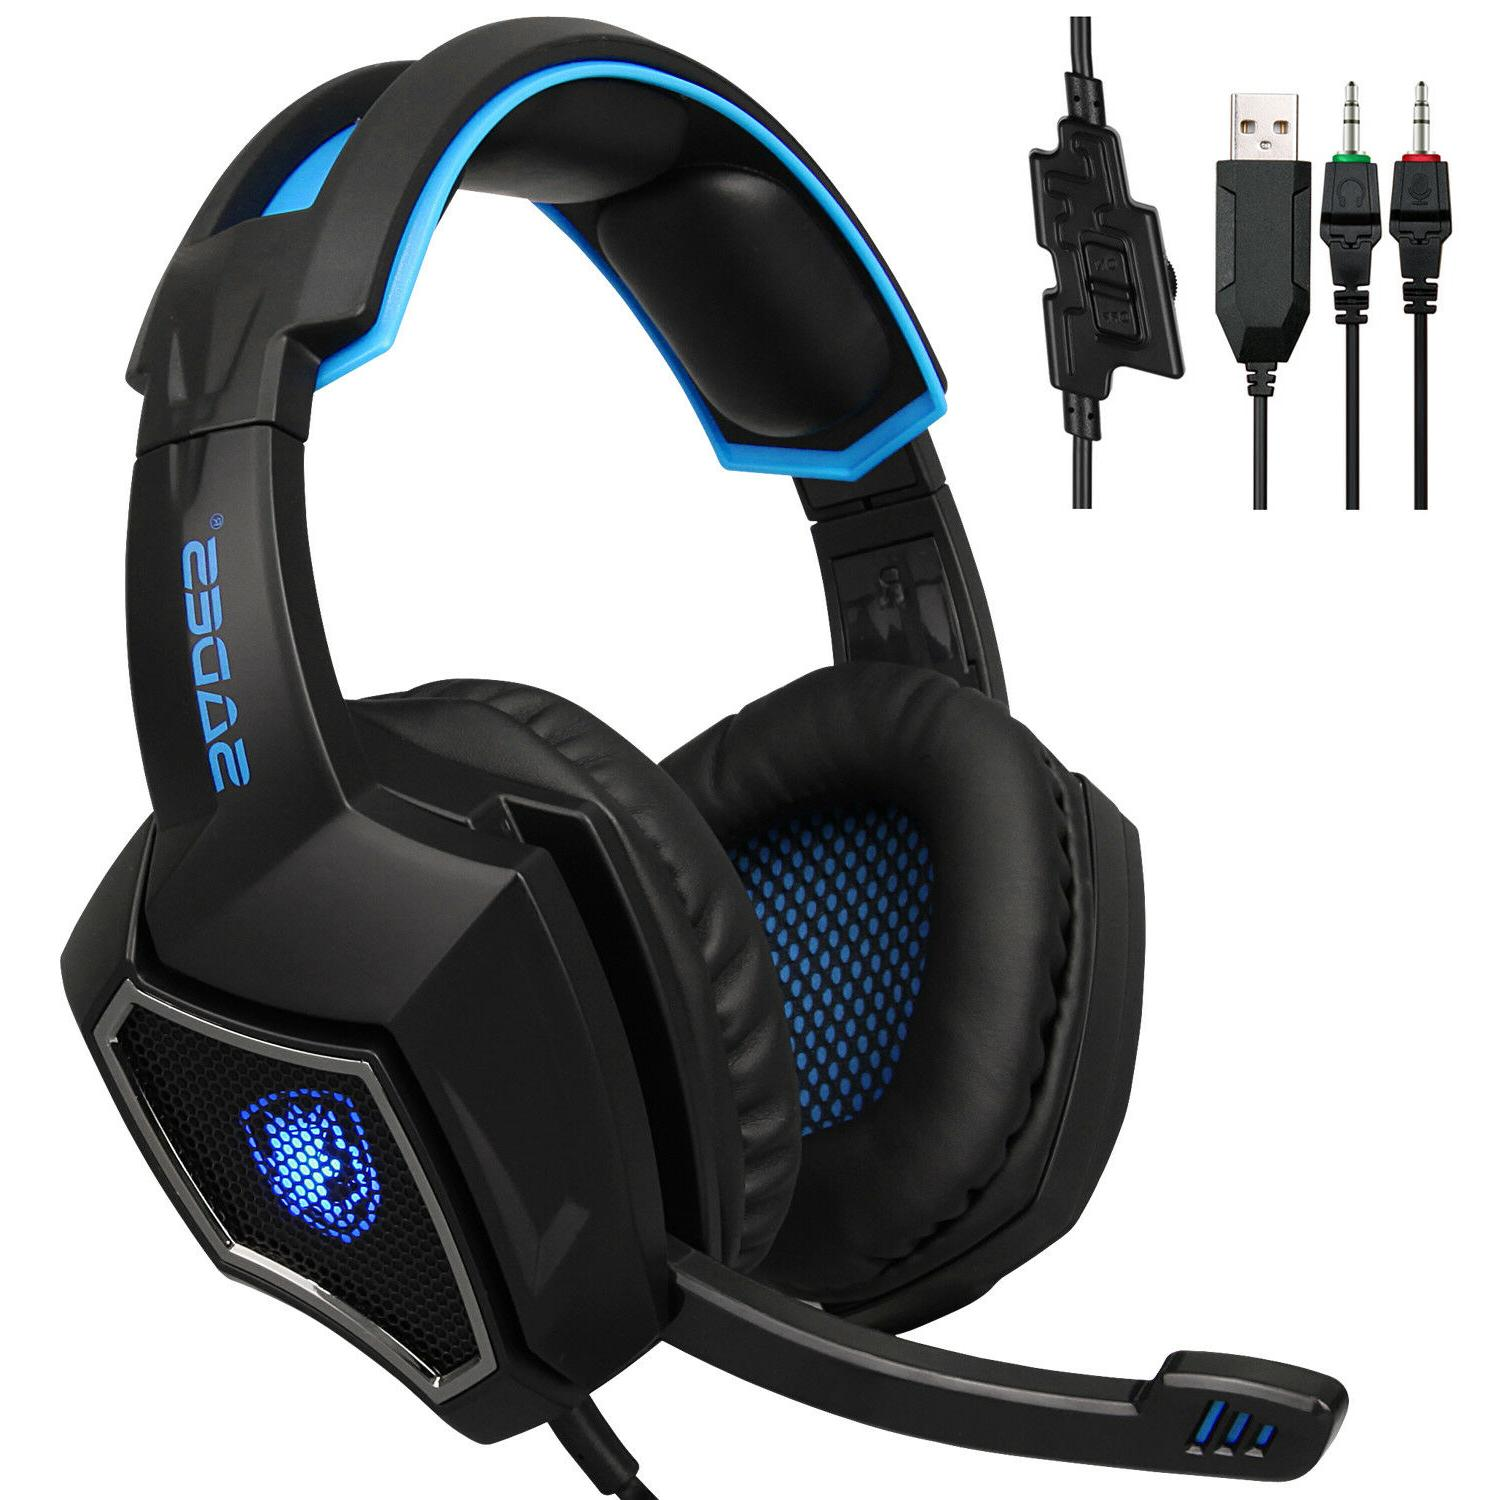 Sades Stereo Headphone 3.5mm For PS4 Xboxone Latop